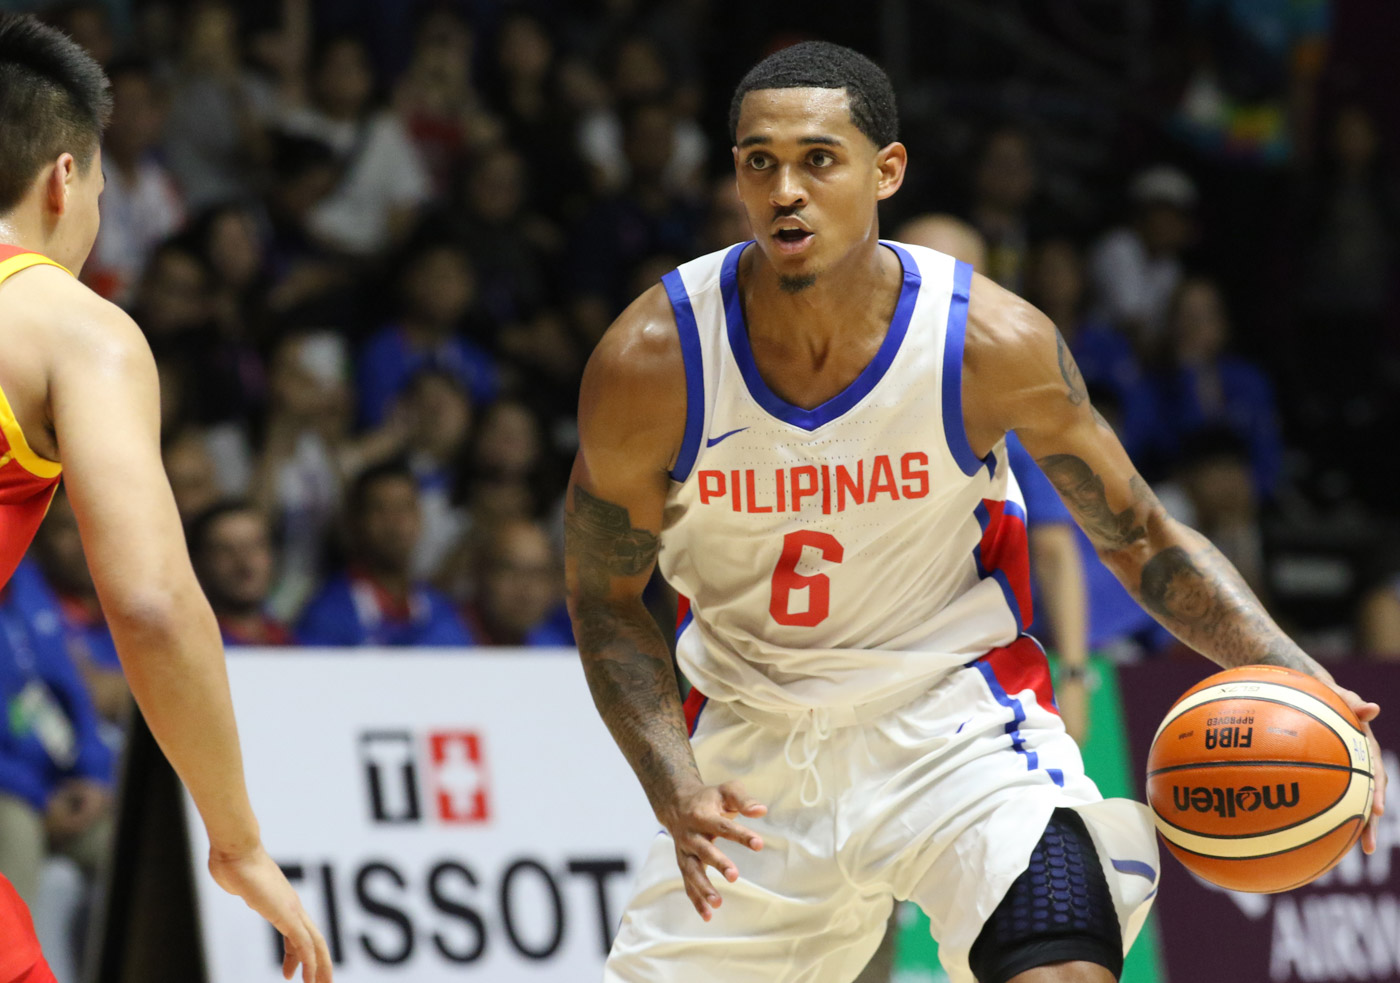 d2438e254e2 Clarkson-led Gilas falls short vs China in 2018 Asian Games